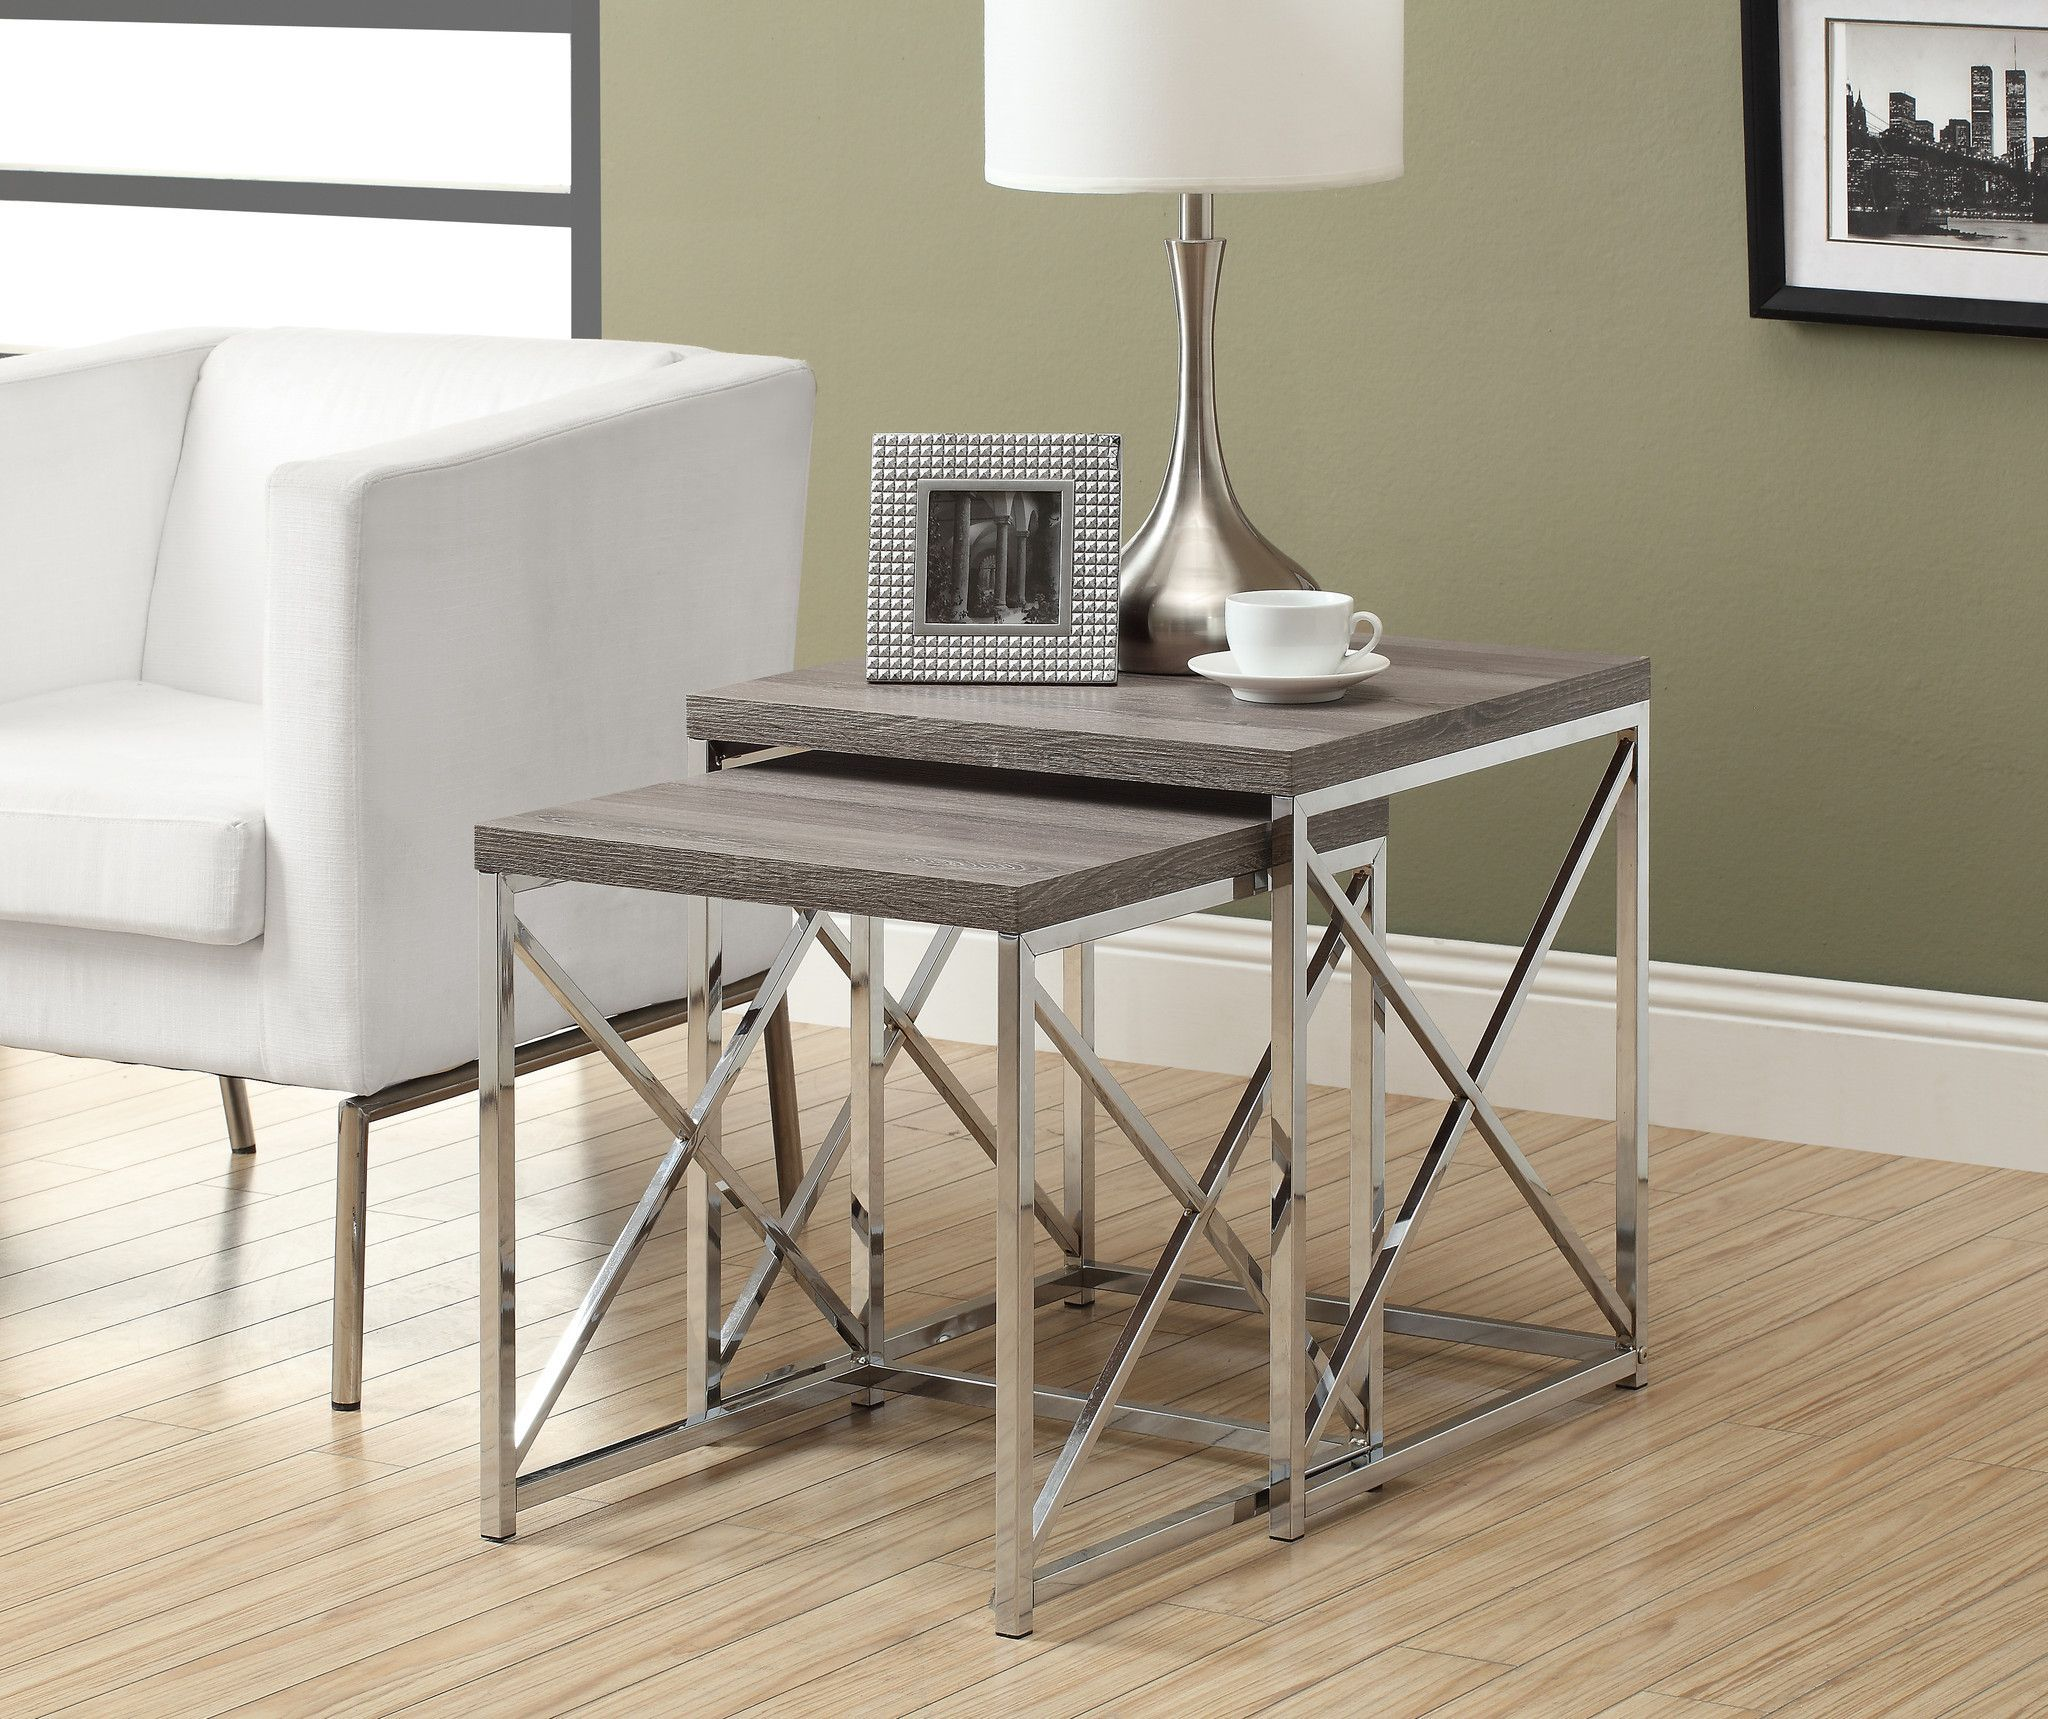 Buy nesting table 2pcs set dark taupe with chrome metal at buy nesting table 2pcs set dark taupe with chrome metal at harvey haley for only 22159 watchthetrailerfo